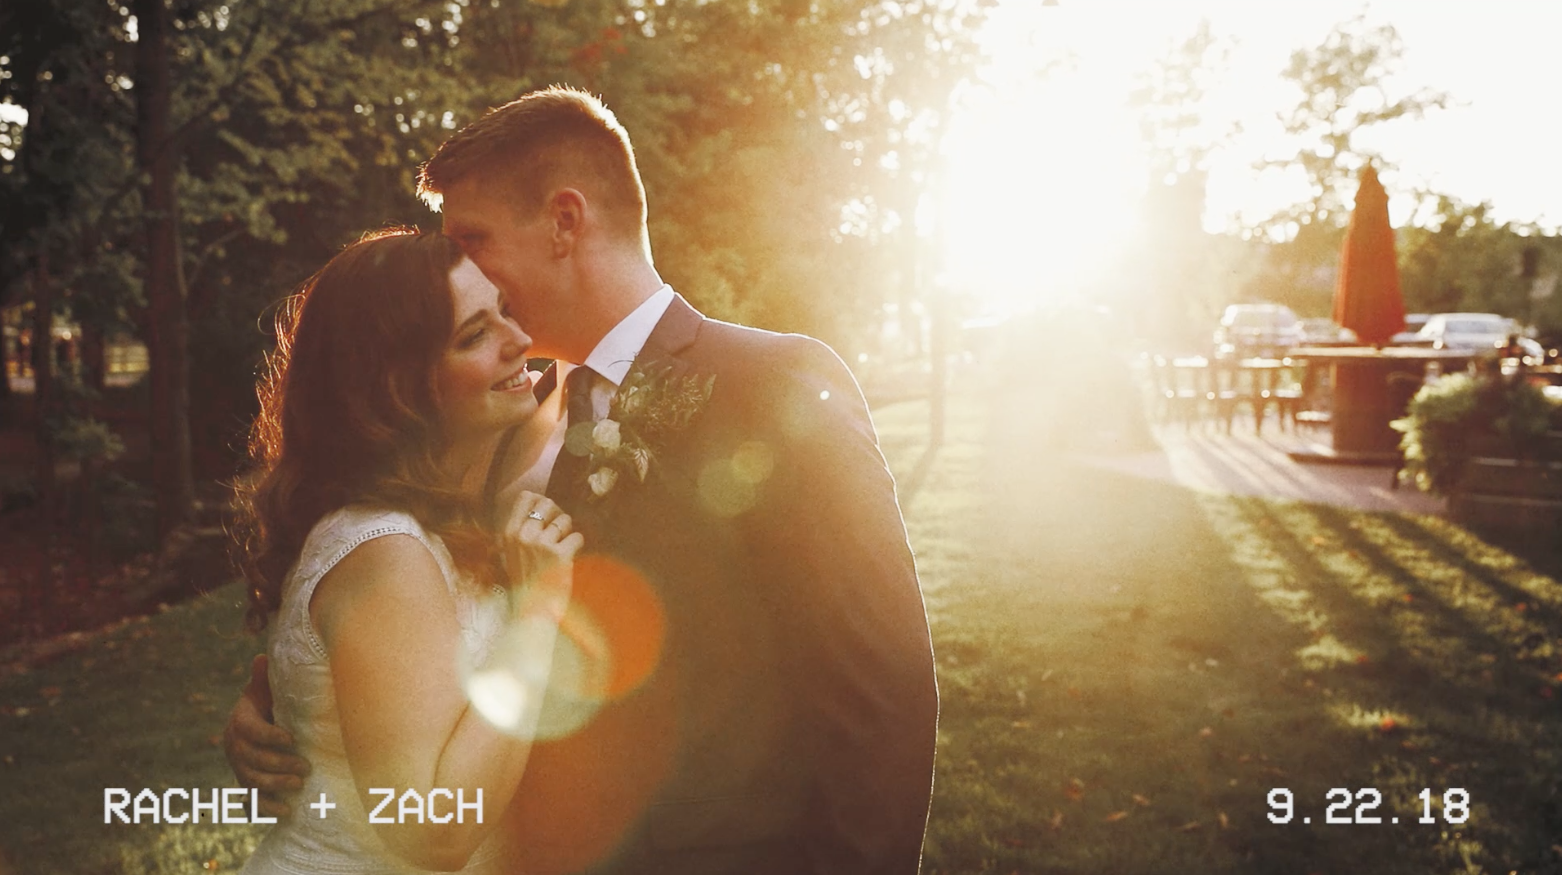 Rach-Zach_Wedding Videography_Copperhead Photography